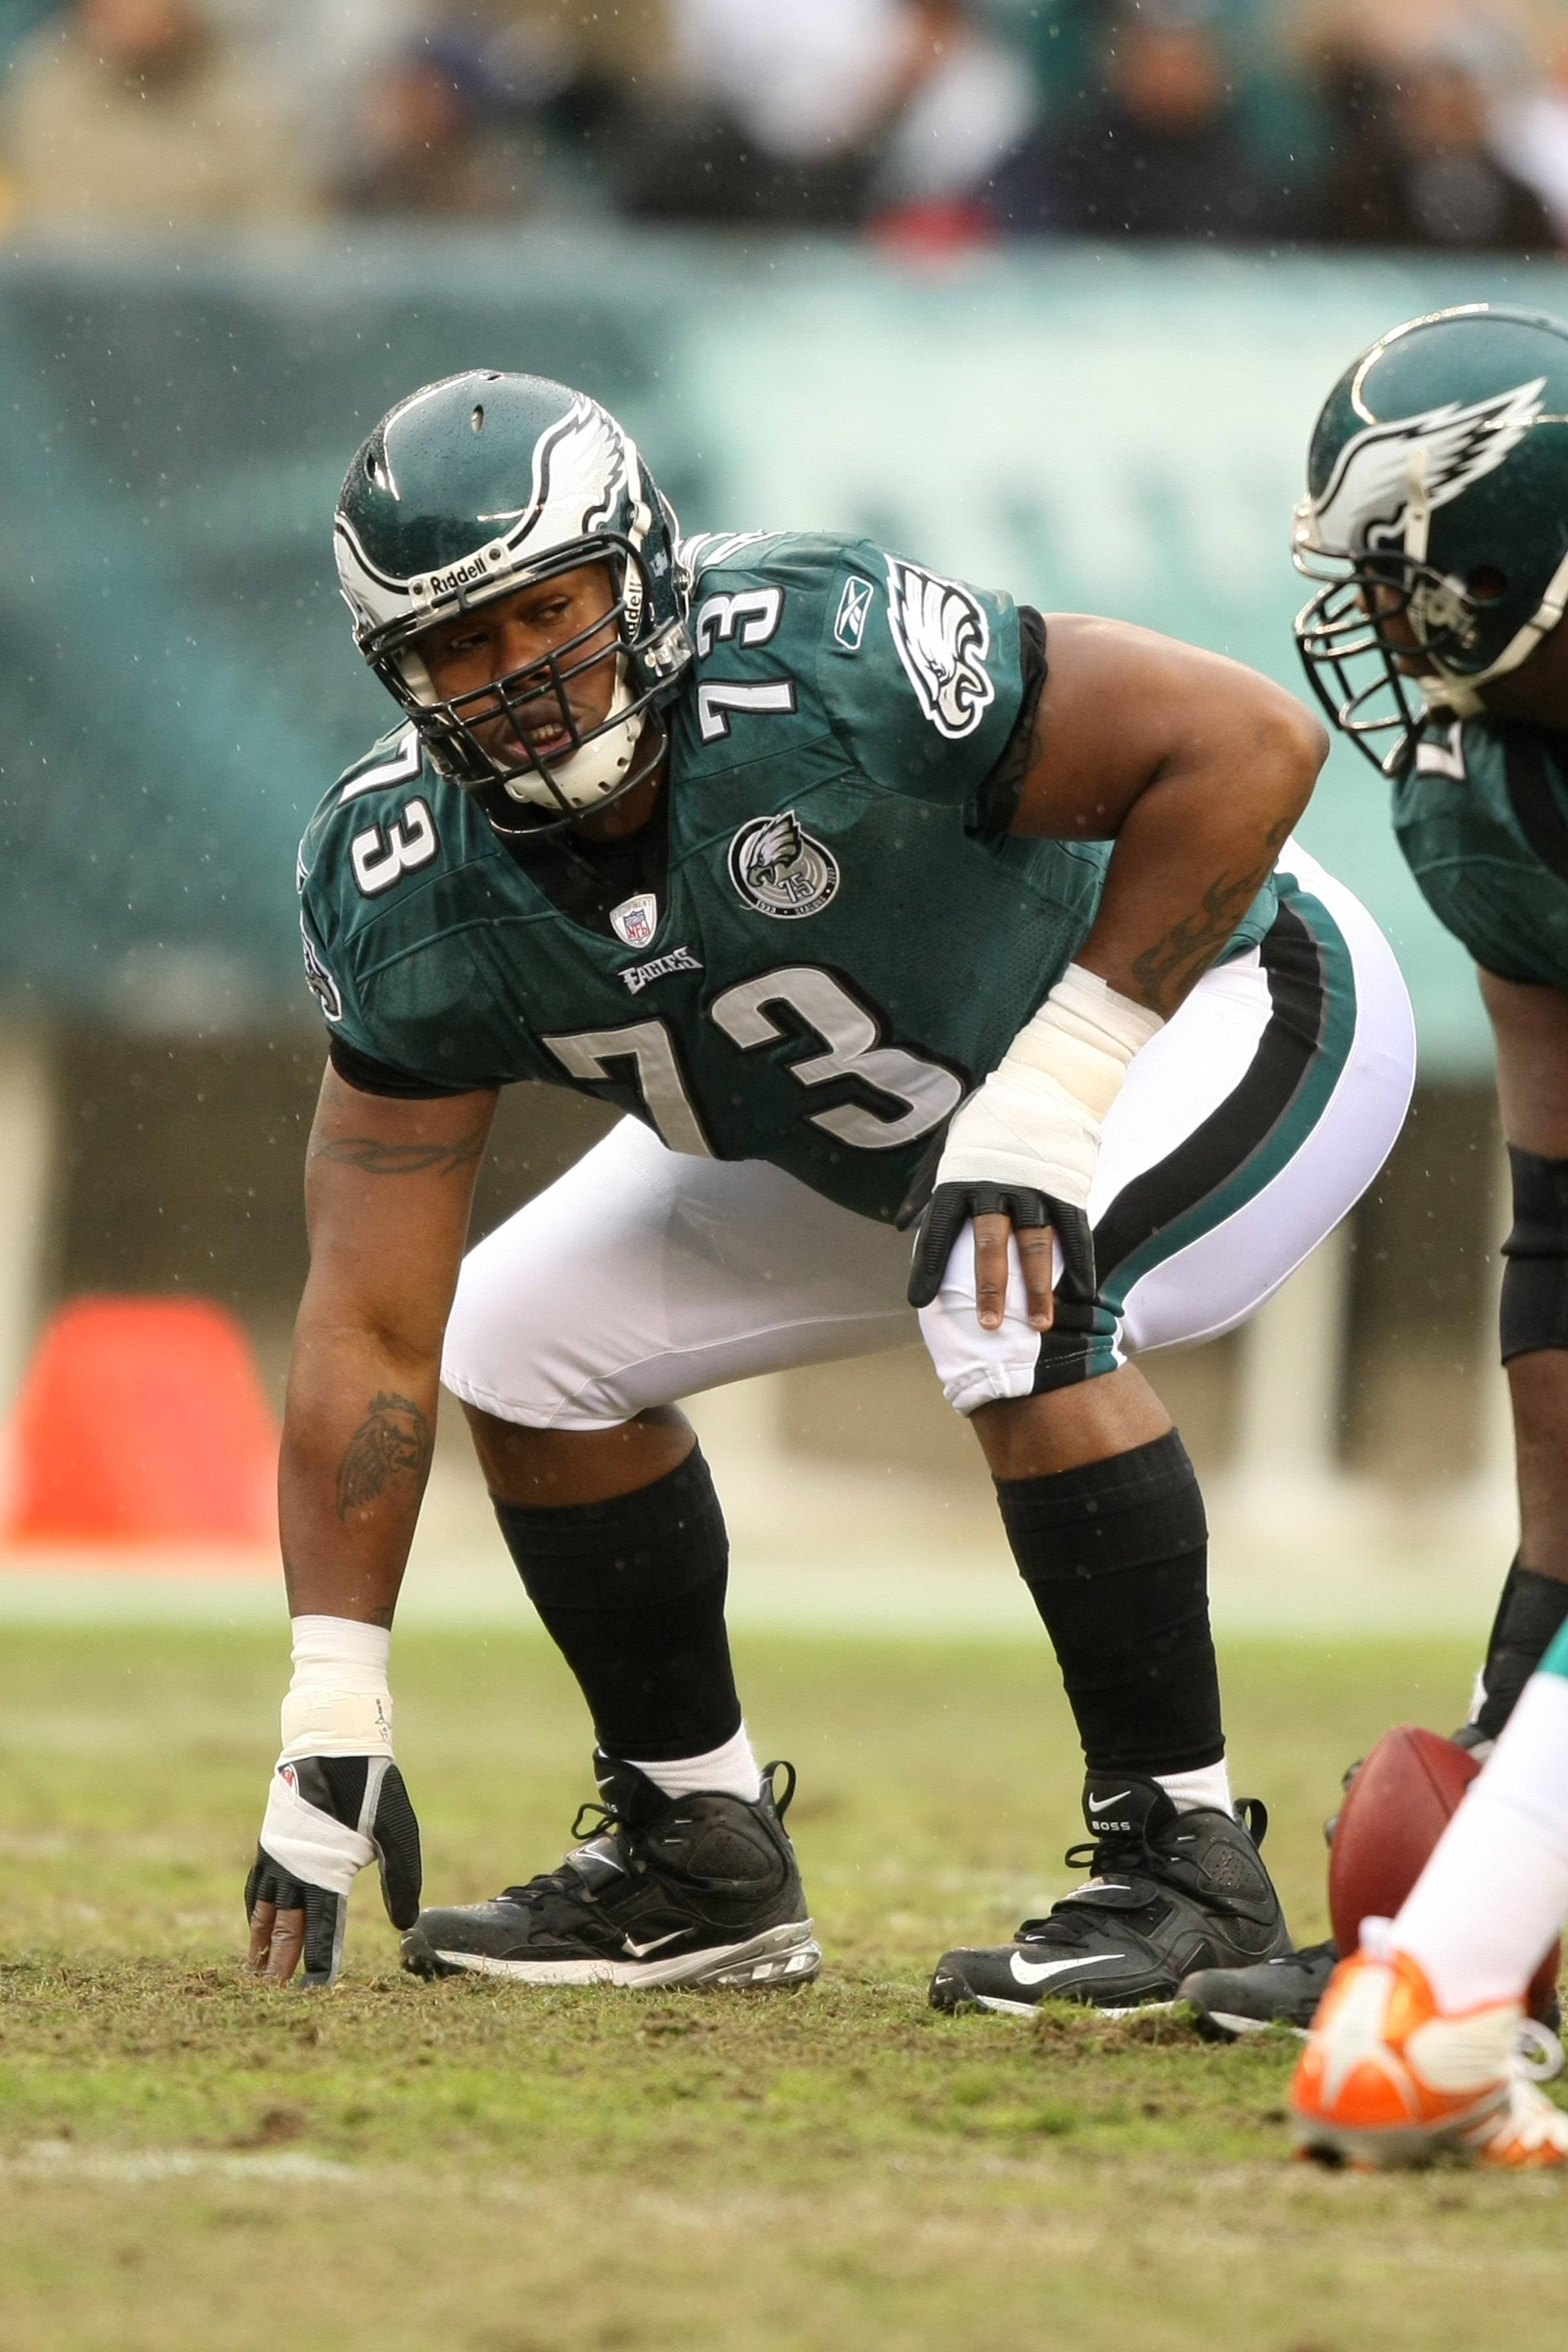 PHILADELPHIA - NOVEMBER 18  Shawn Andrews  73 of the Philadelphia Eagles  crouches into position ac2b2b6f7